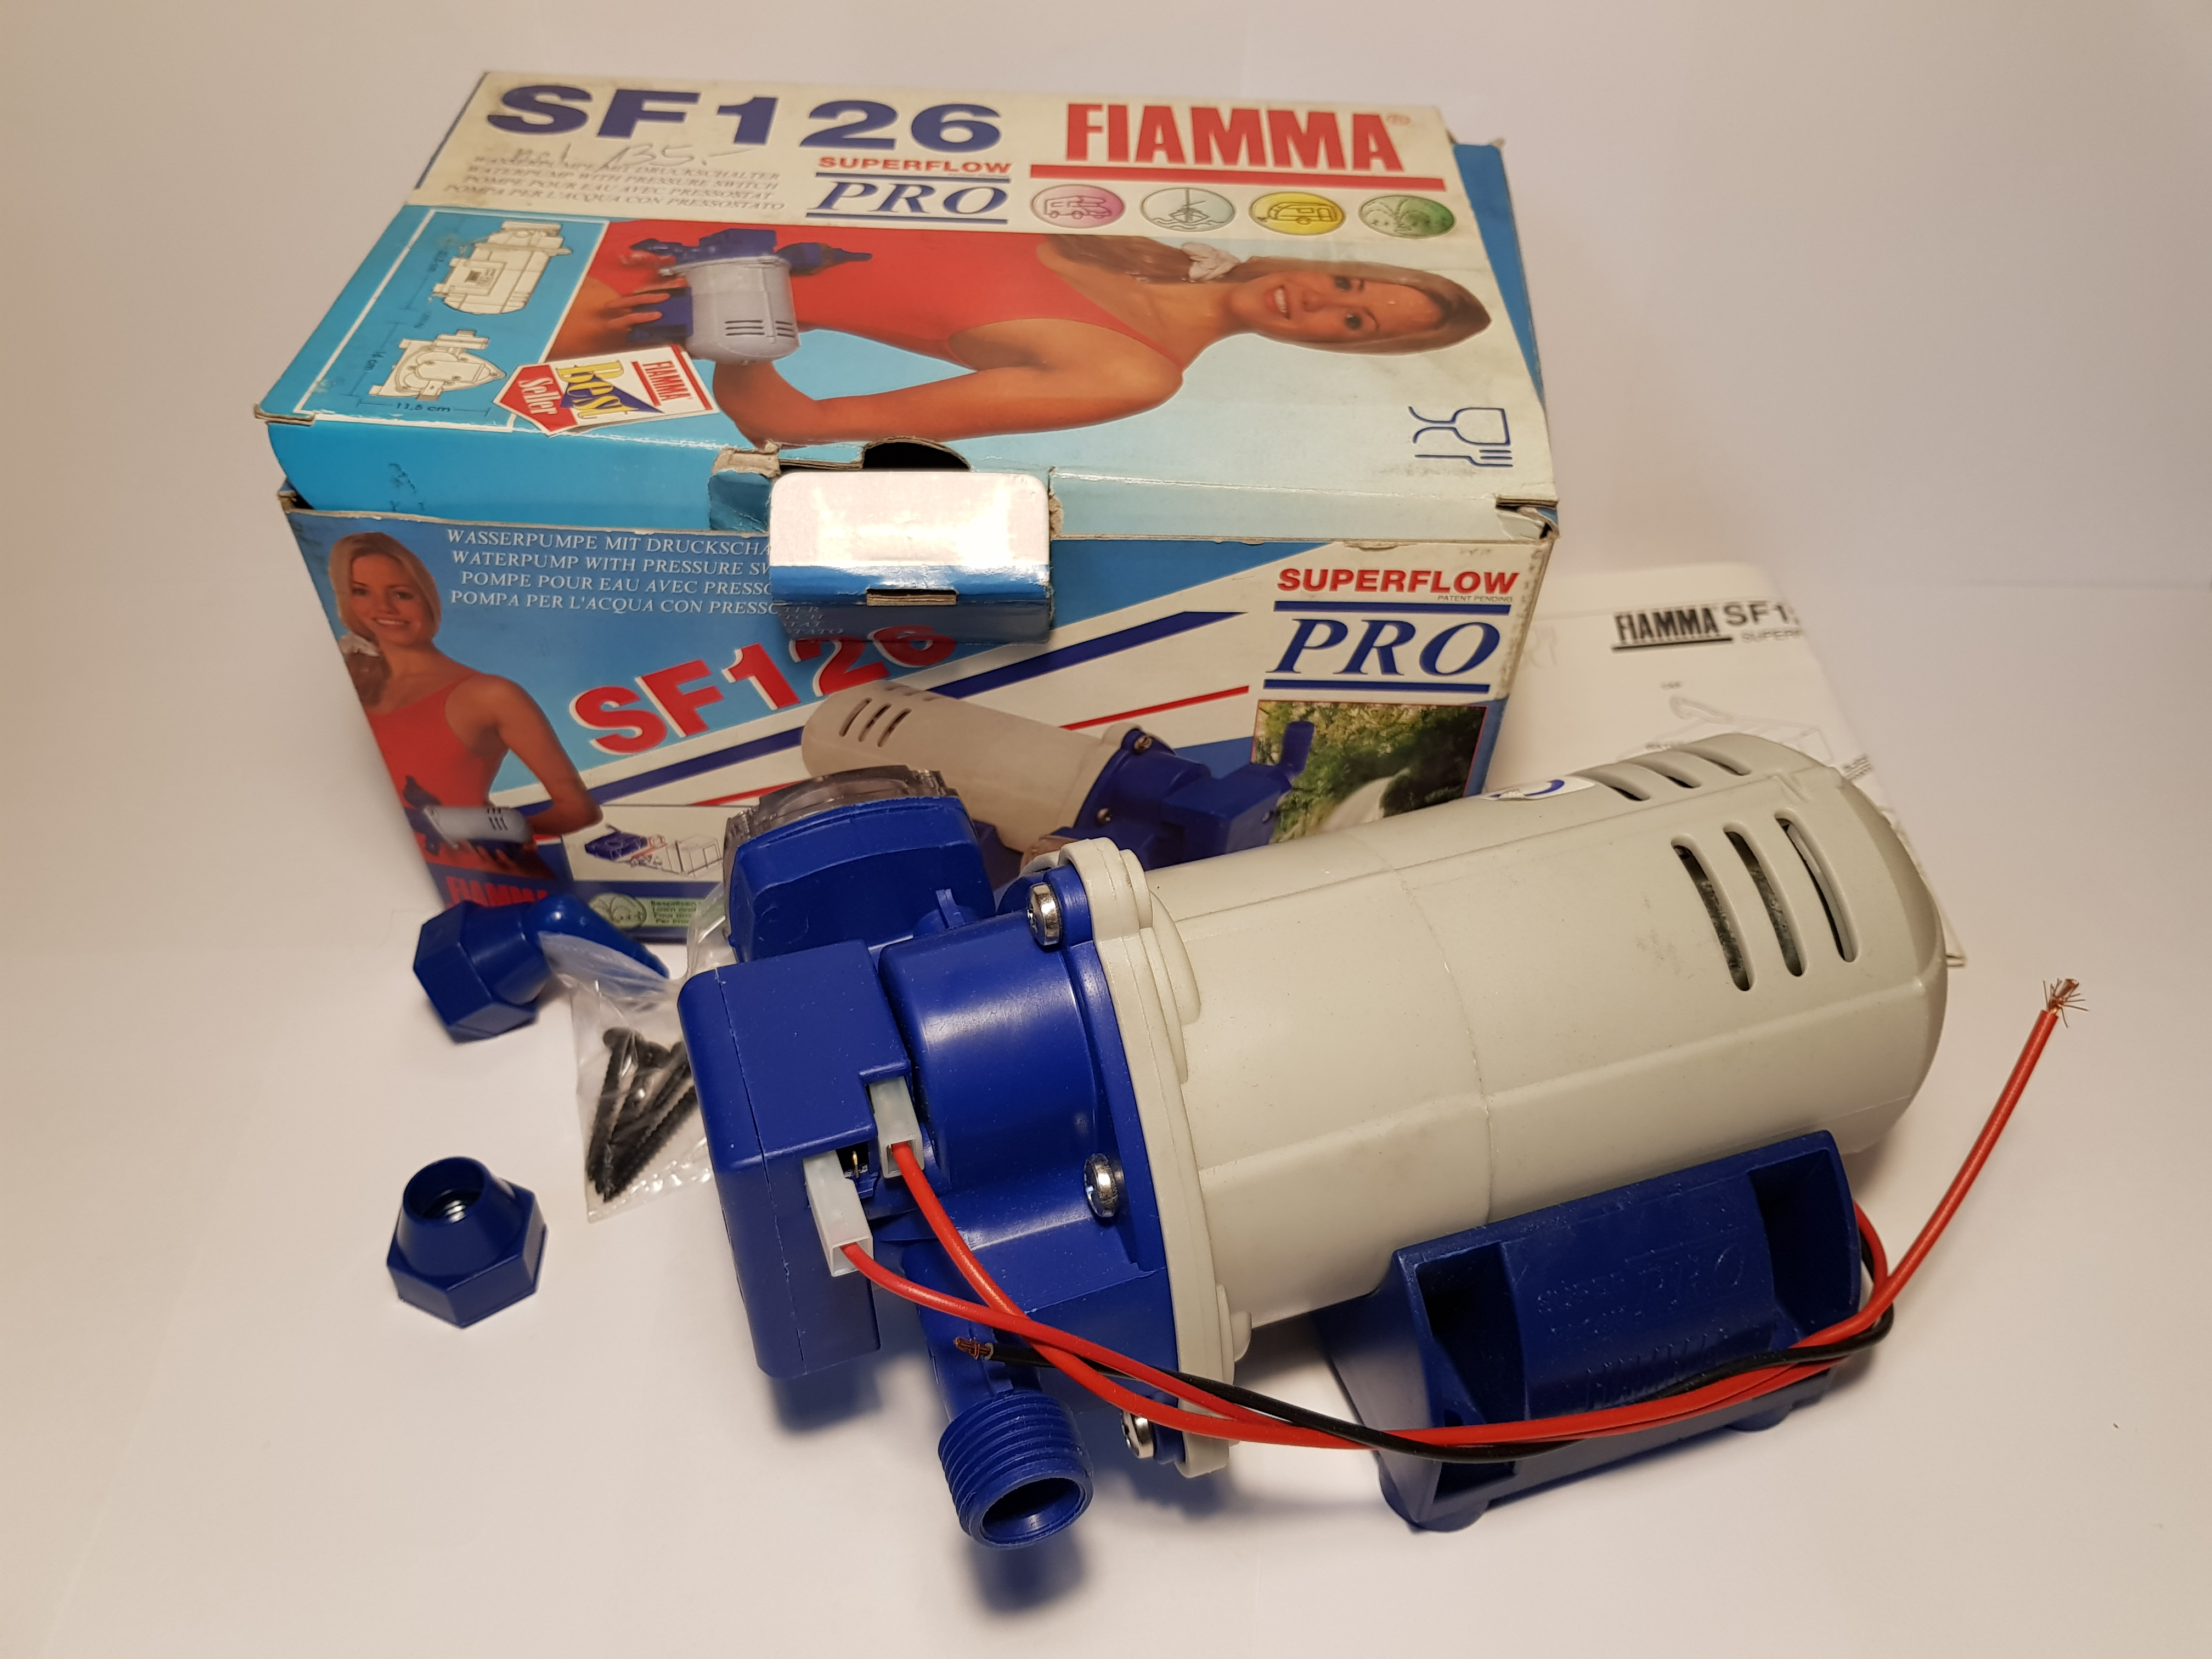 Fiamma SF126 Wasserpumpe mit Druckschalter Superflow Pro Water Pump Press Switch